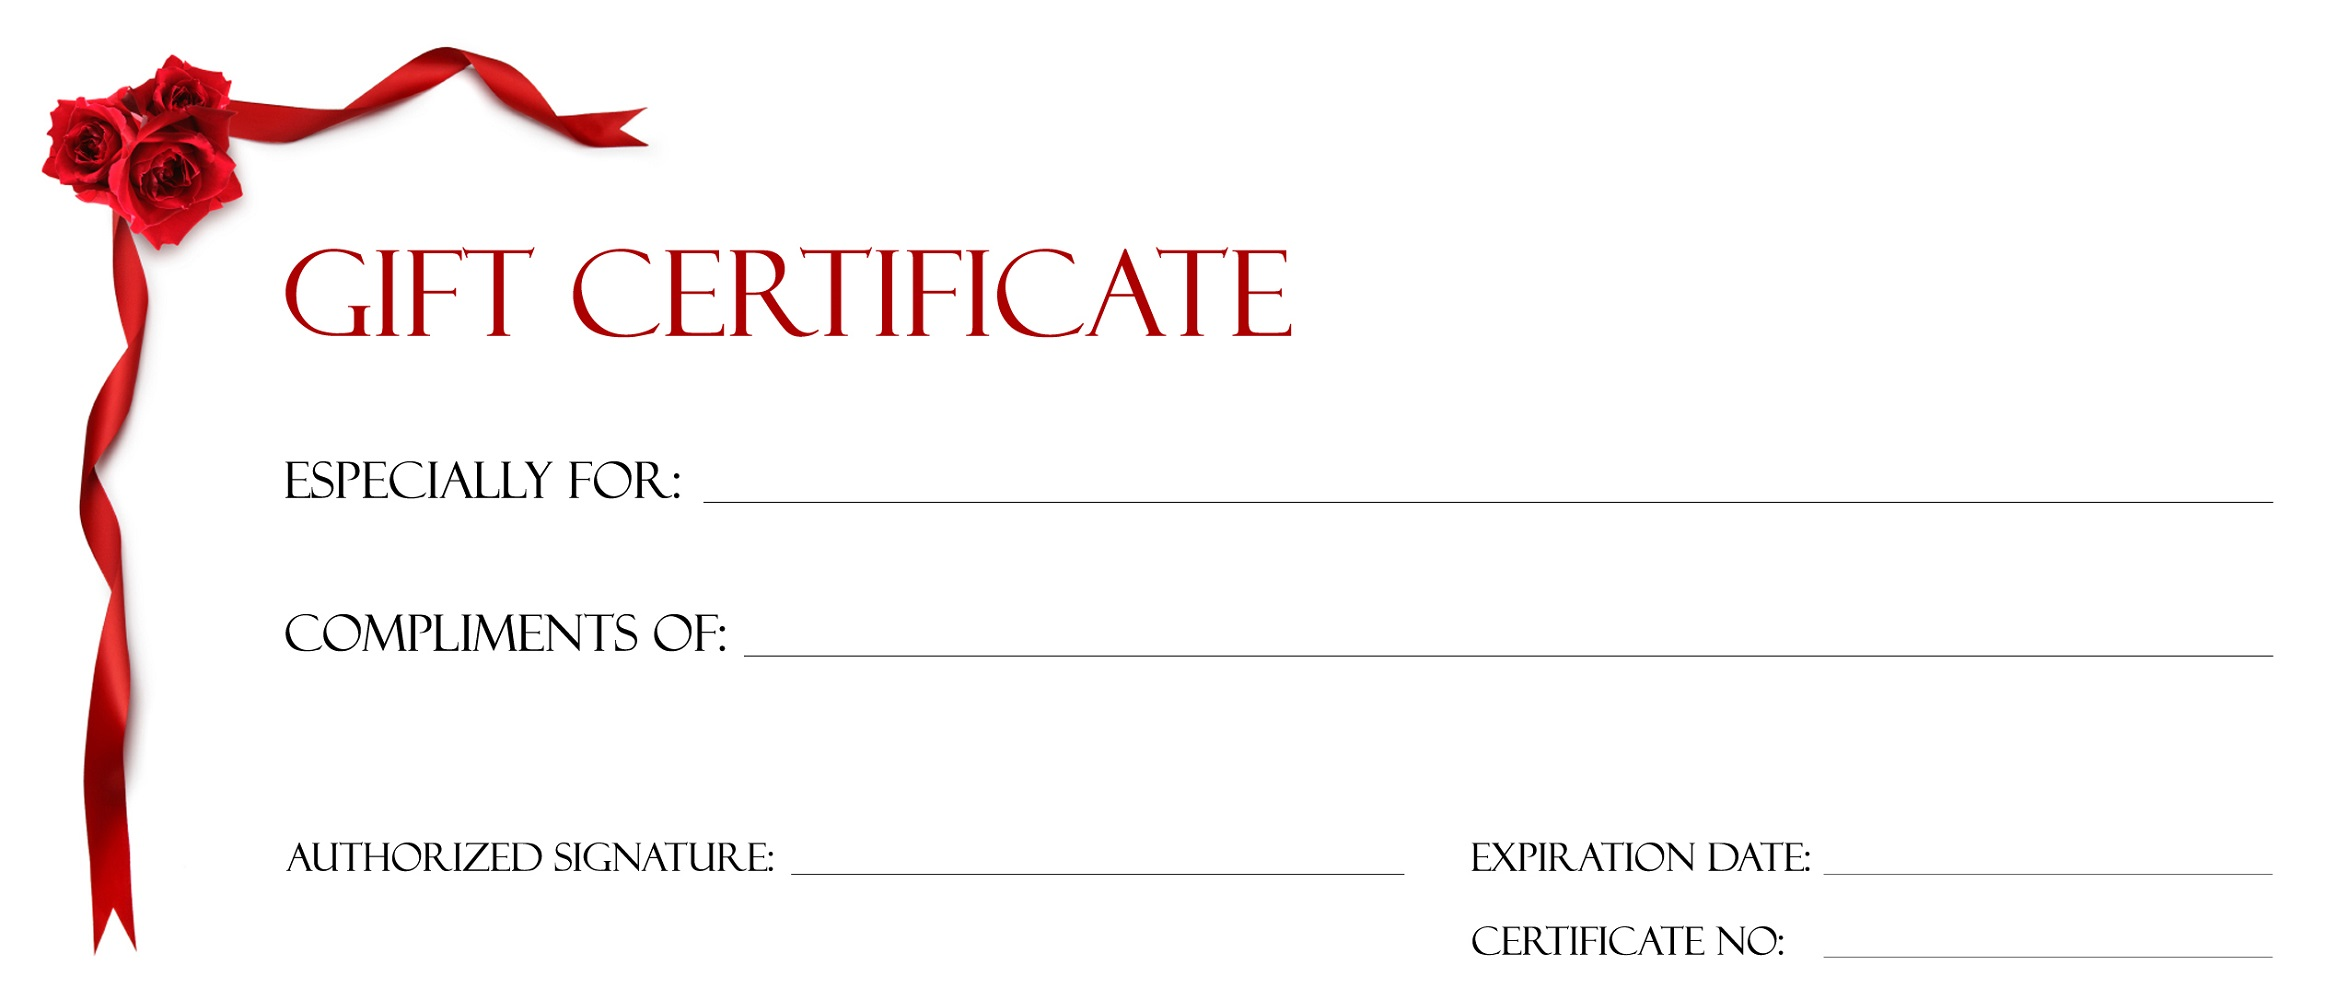 Fillable Gift Certificate Template christmas printable gift – Homemade Gift Certificate Templates